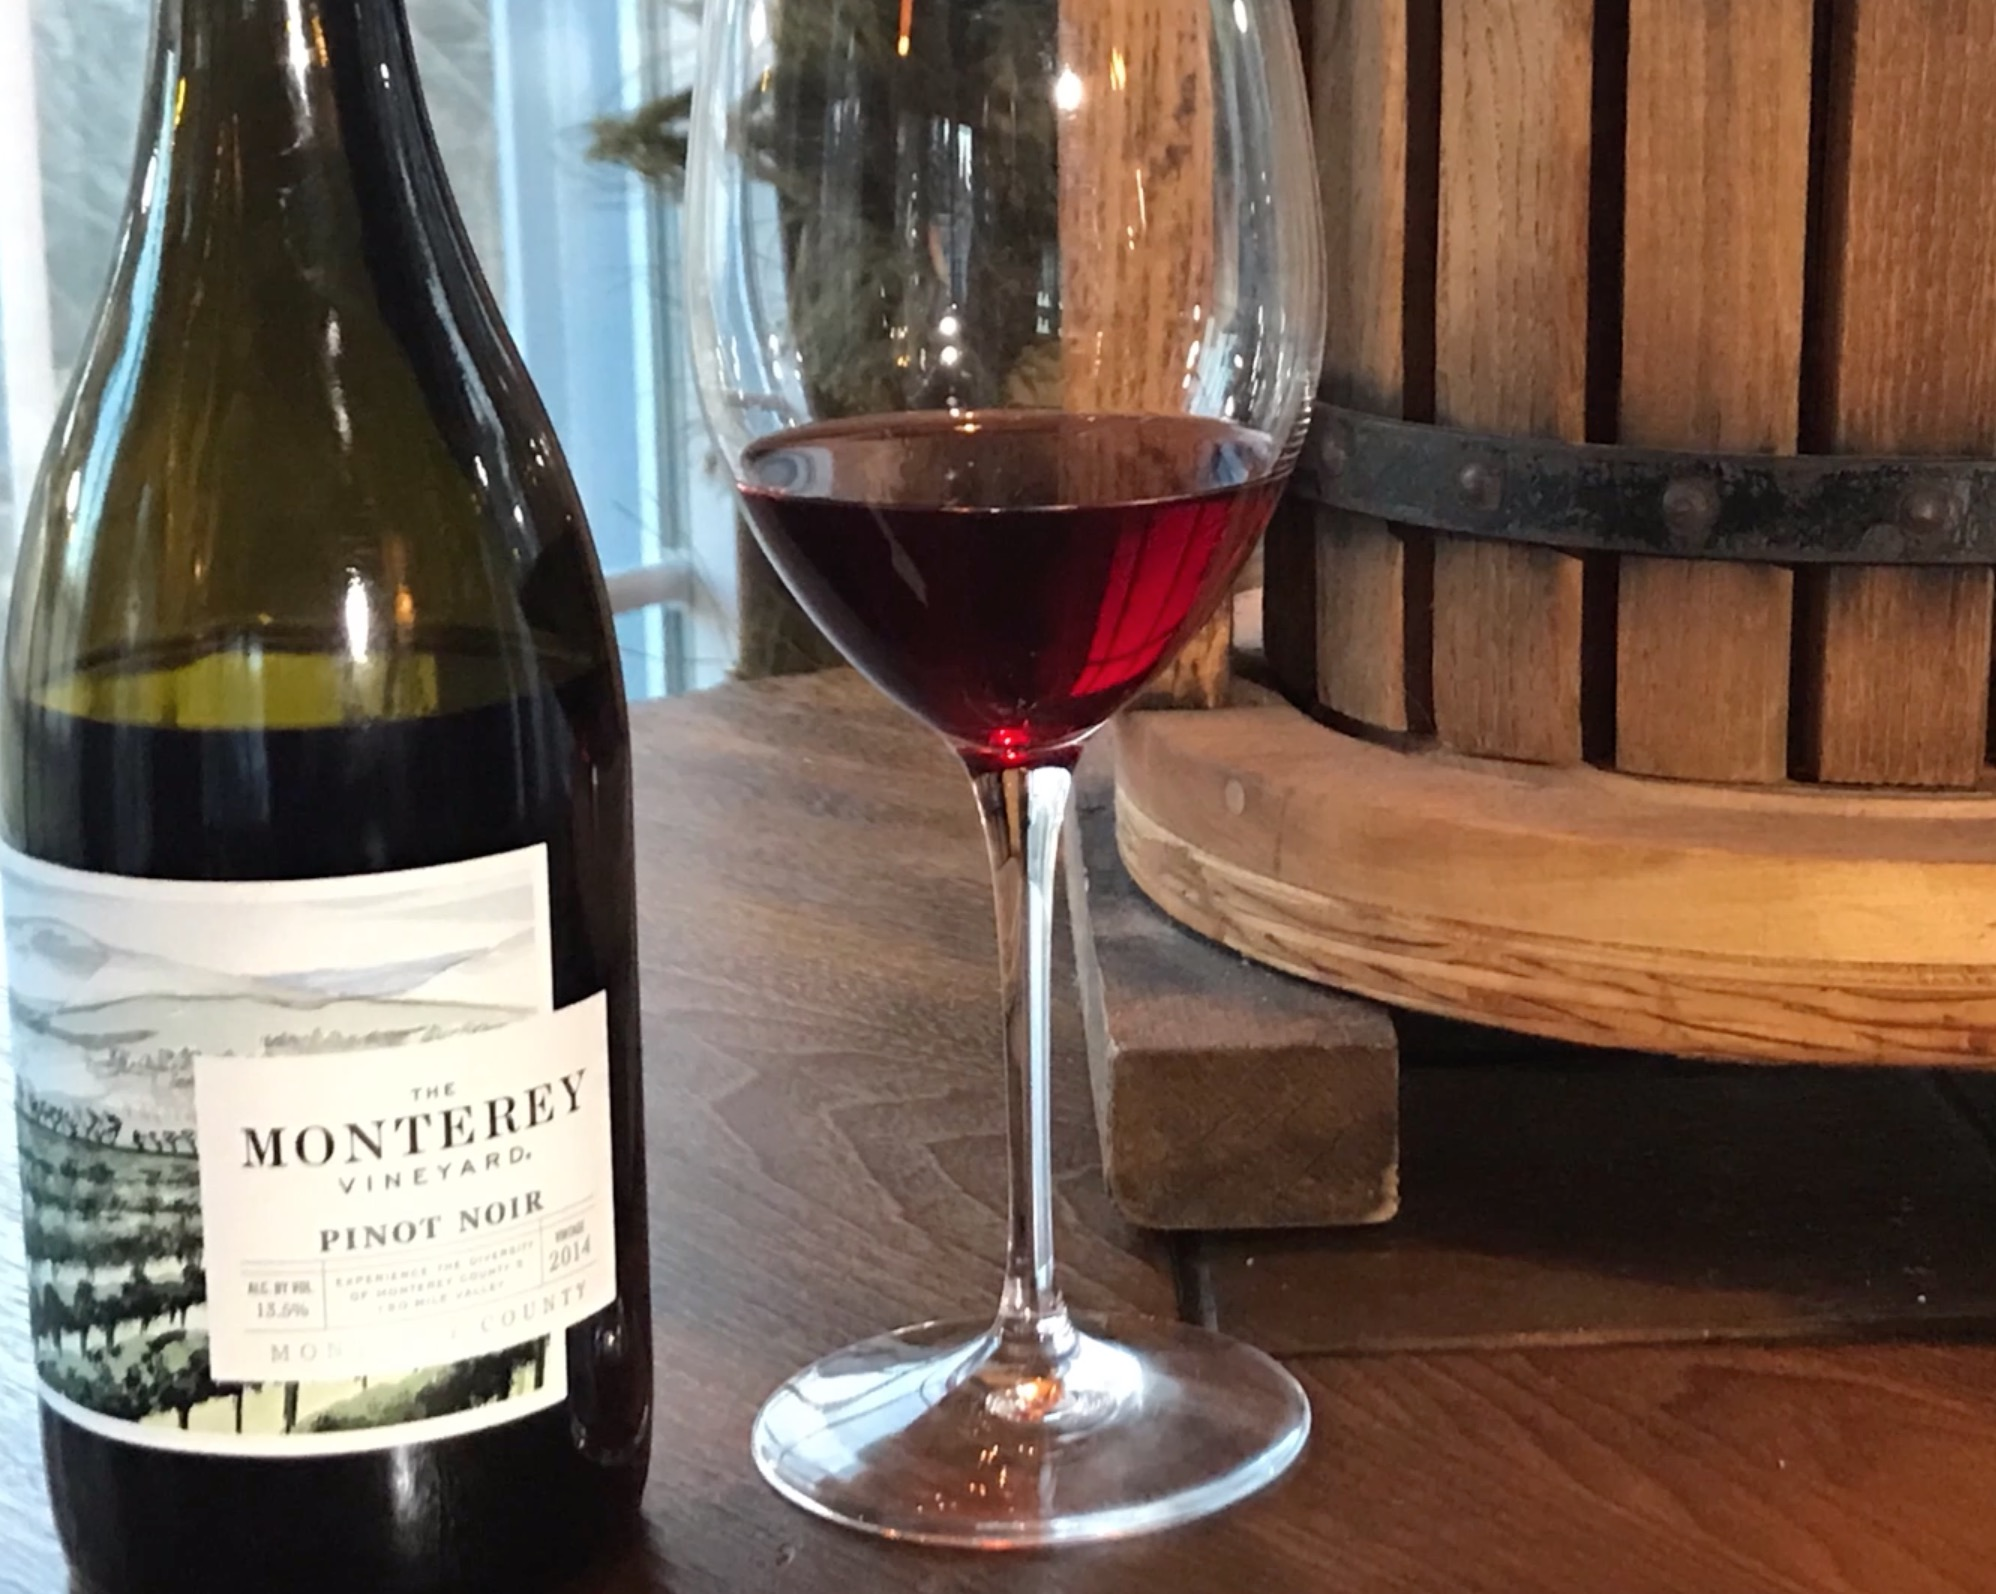 Wine of the Day – Monterey Pinot Noir